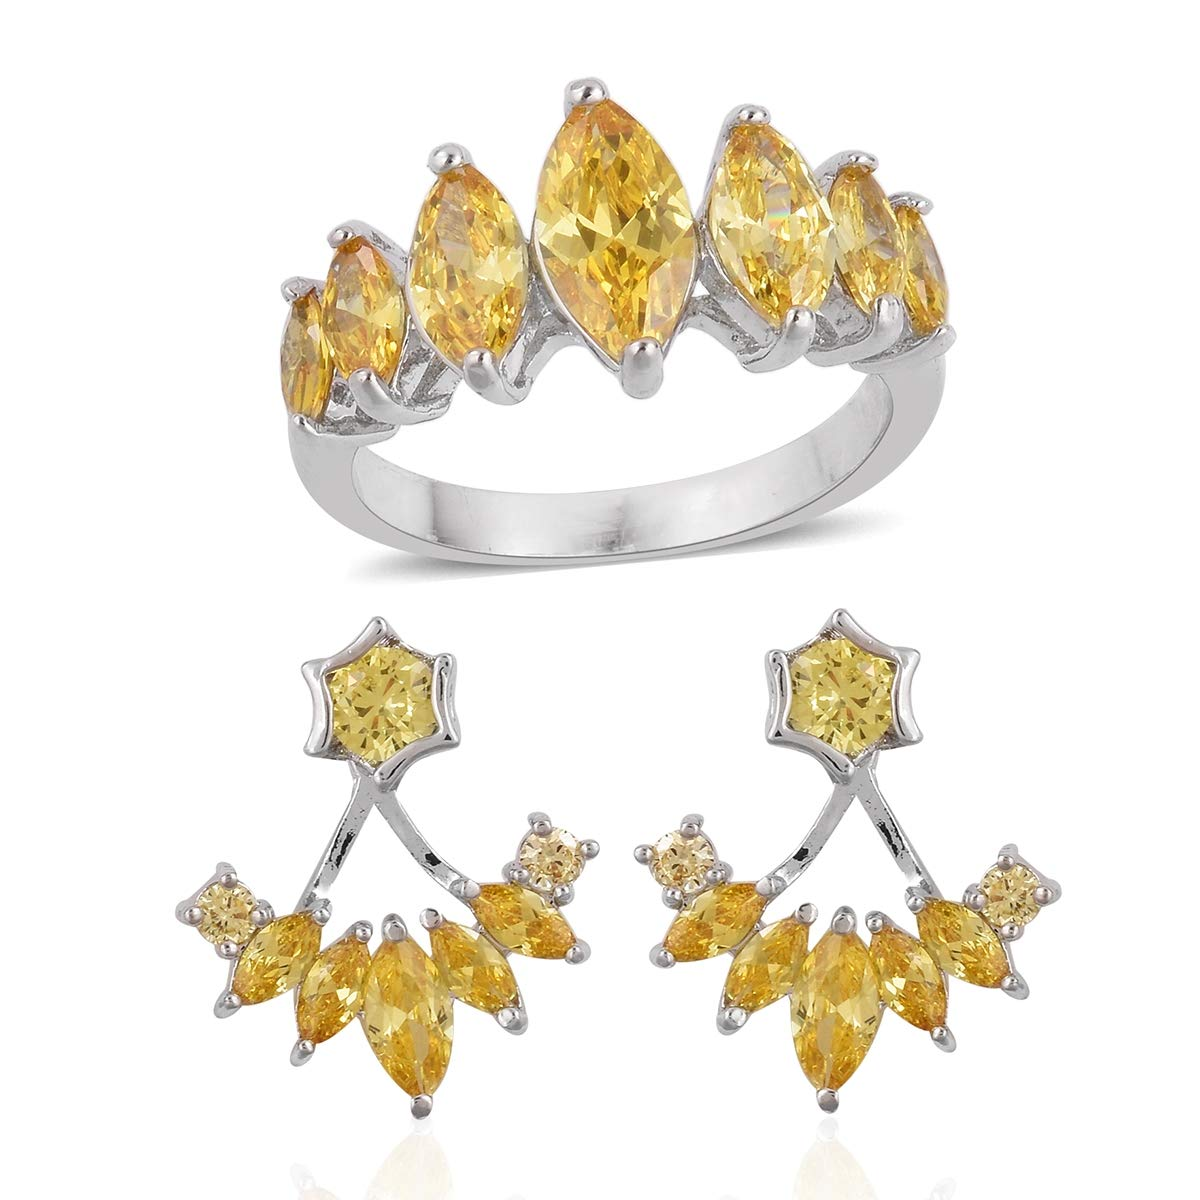 Shop LC Round Yellow Cubic Zirconia Silvertone Statement Ring Size 8 Earring Set Cttw 2.9